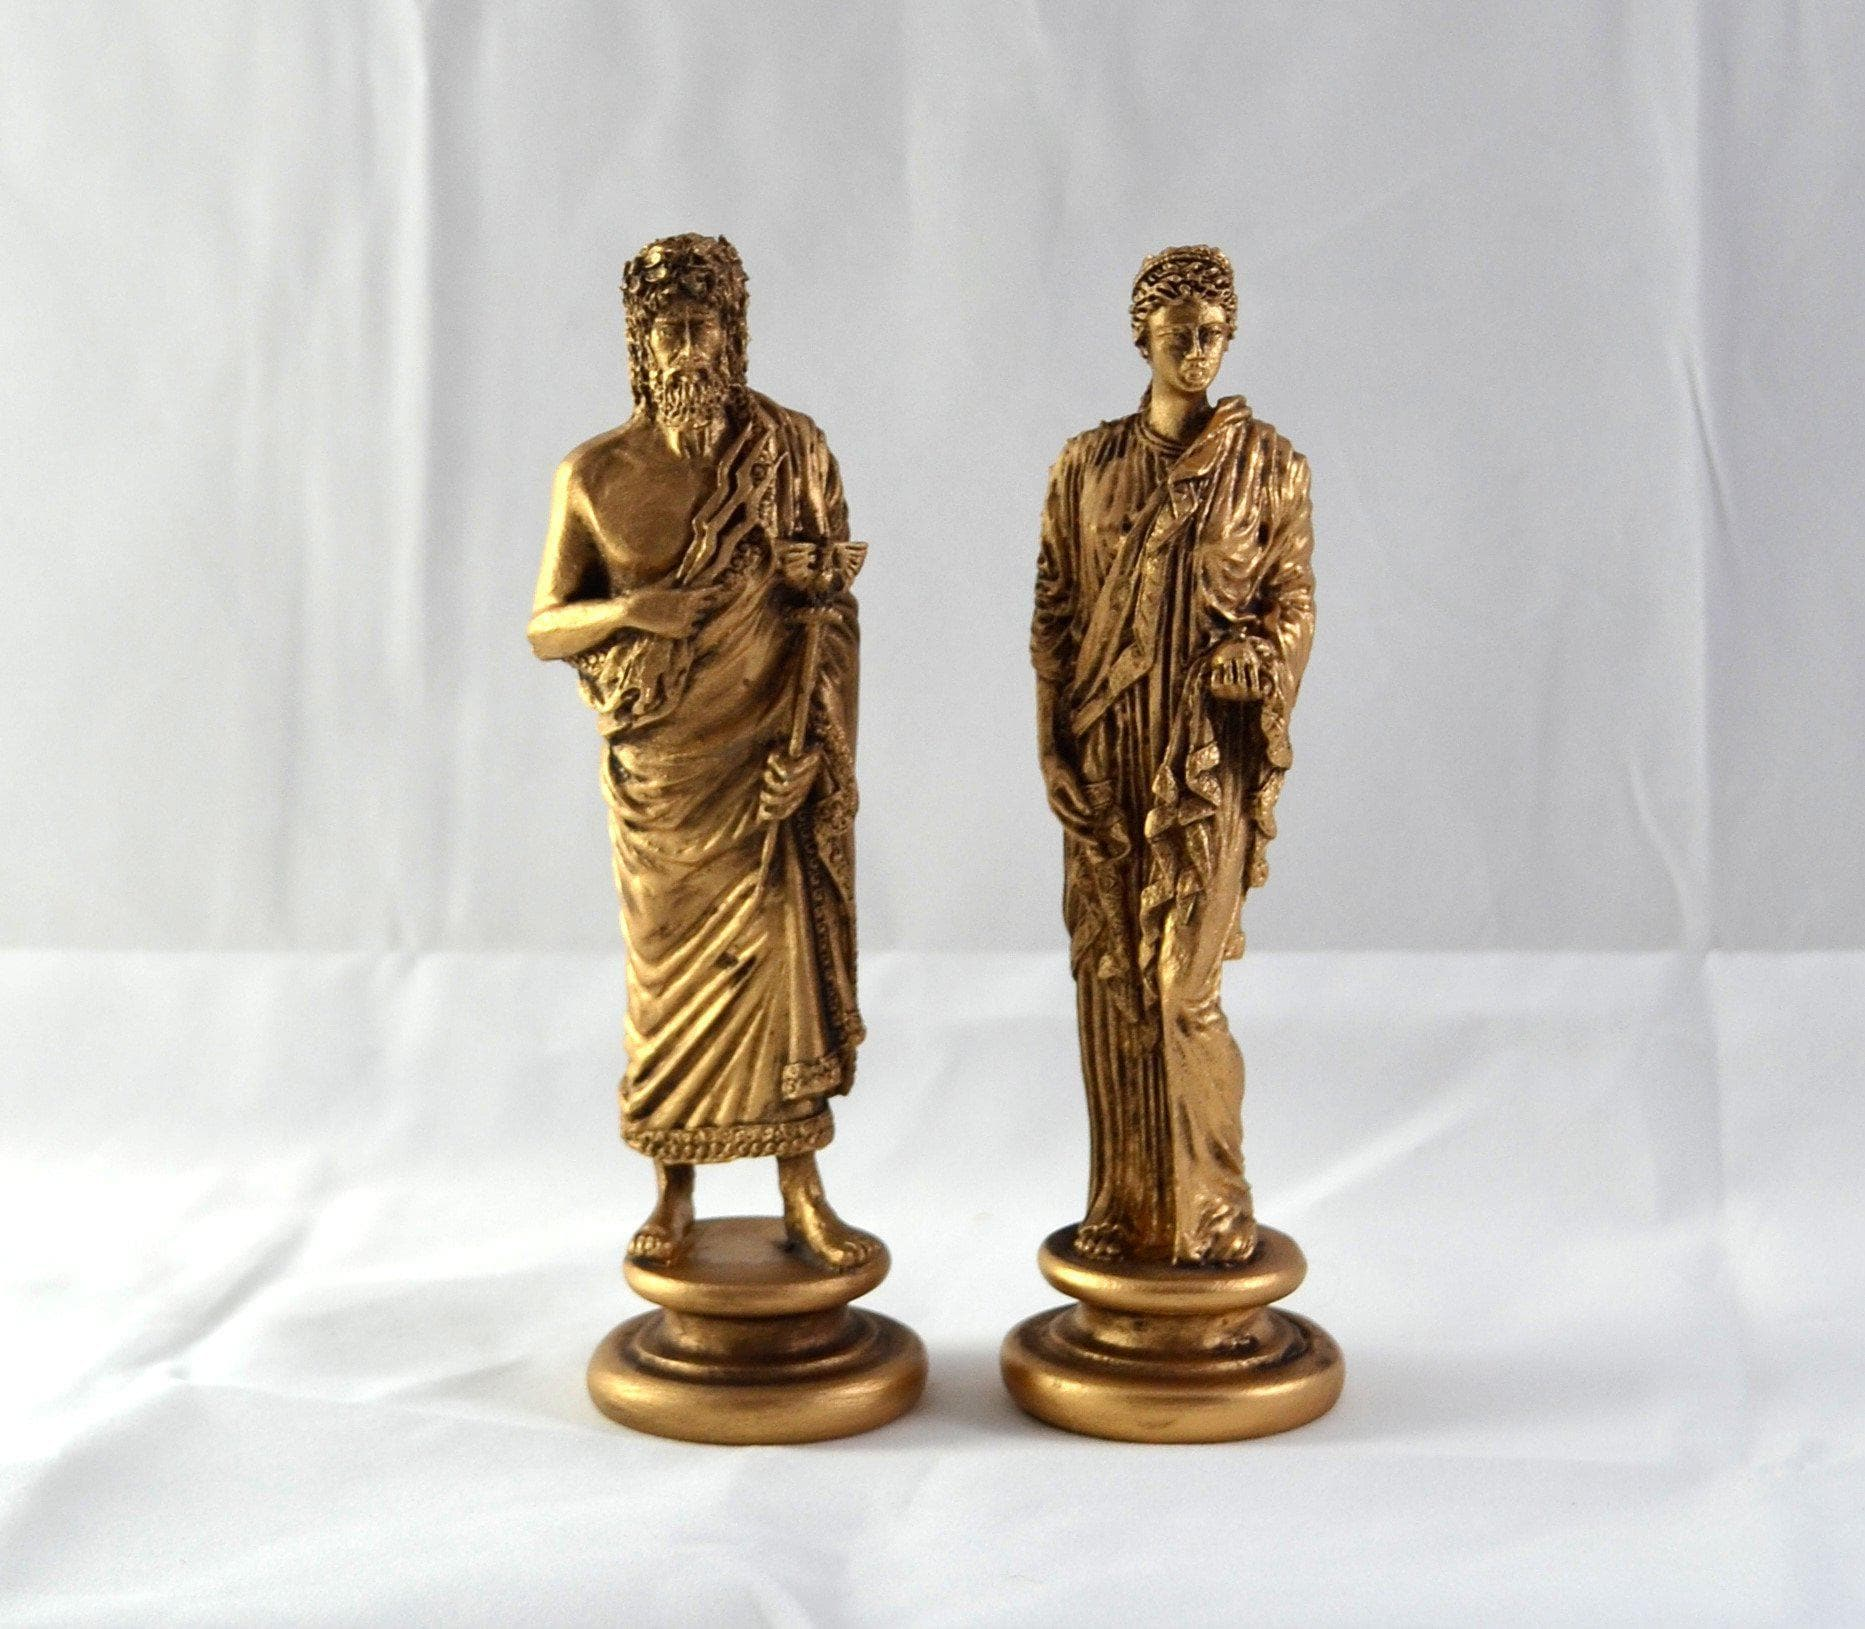 Ancient Roman Gods Jupiter & Juno Gold Patina Statue Set Ancient Treasures Ancientreasures Viking Odin Thor Mjolnir Celtic Ancient Egypt Norse Norse Mythology